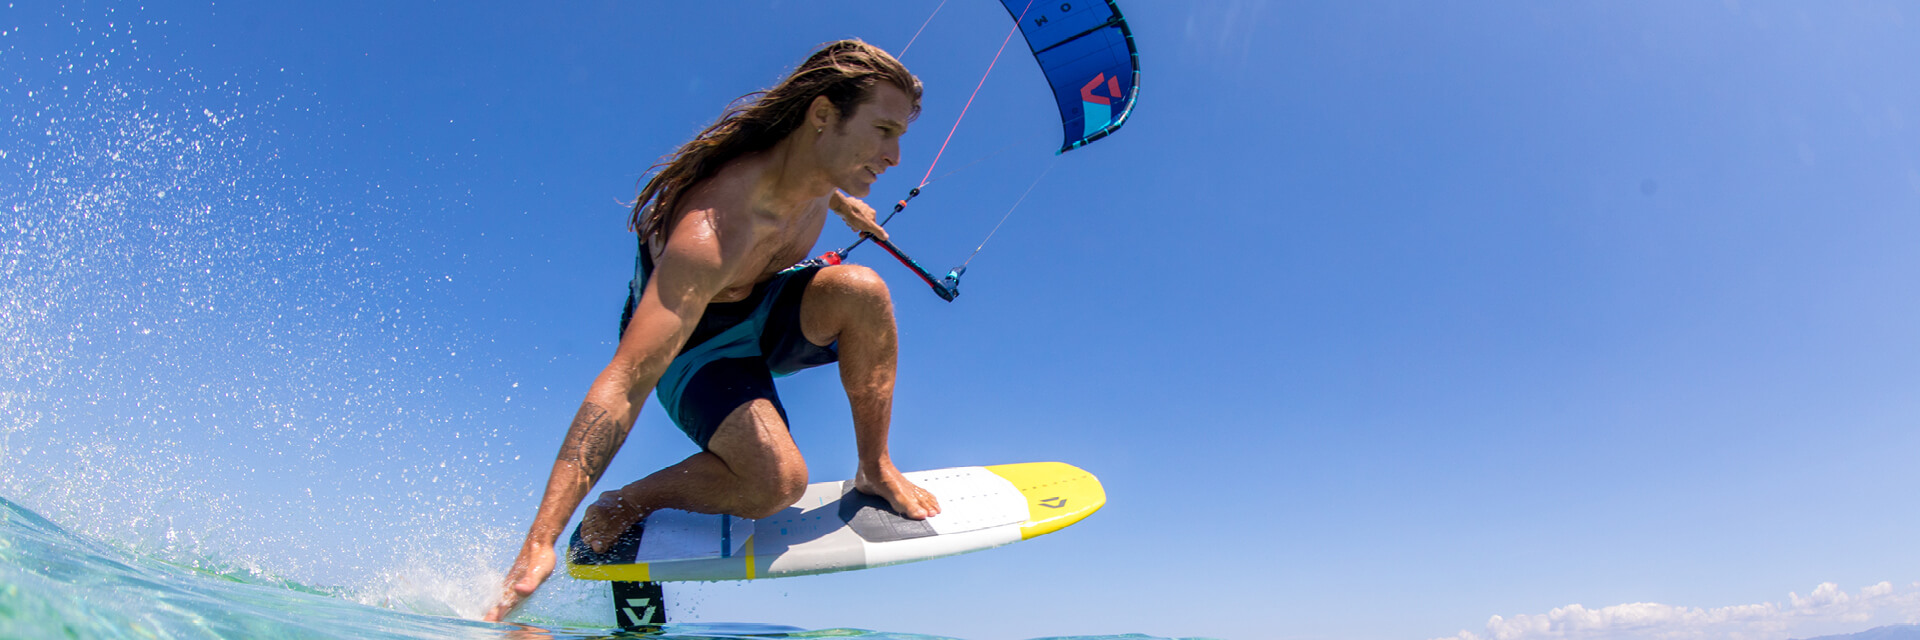 Duotone Kiteboarding PACE 2020 Tom Hebert